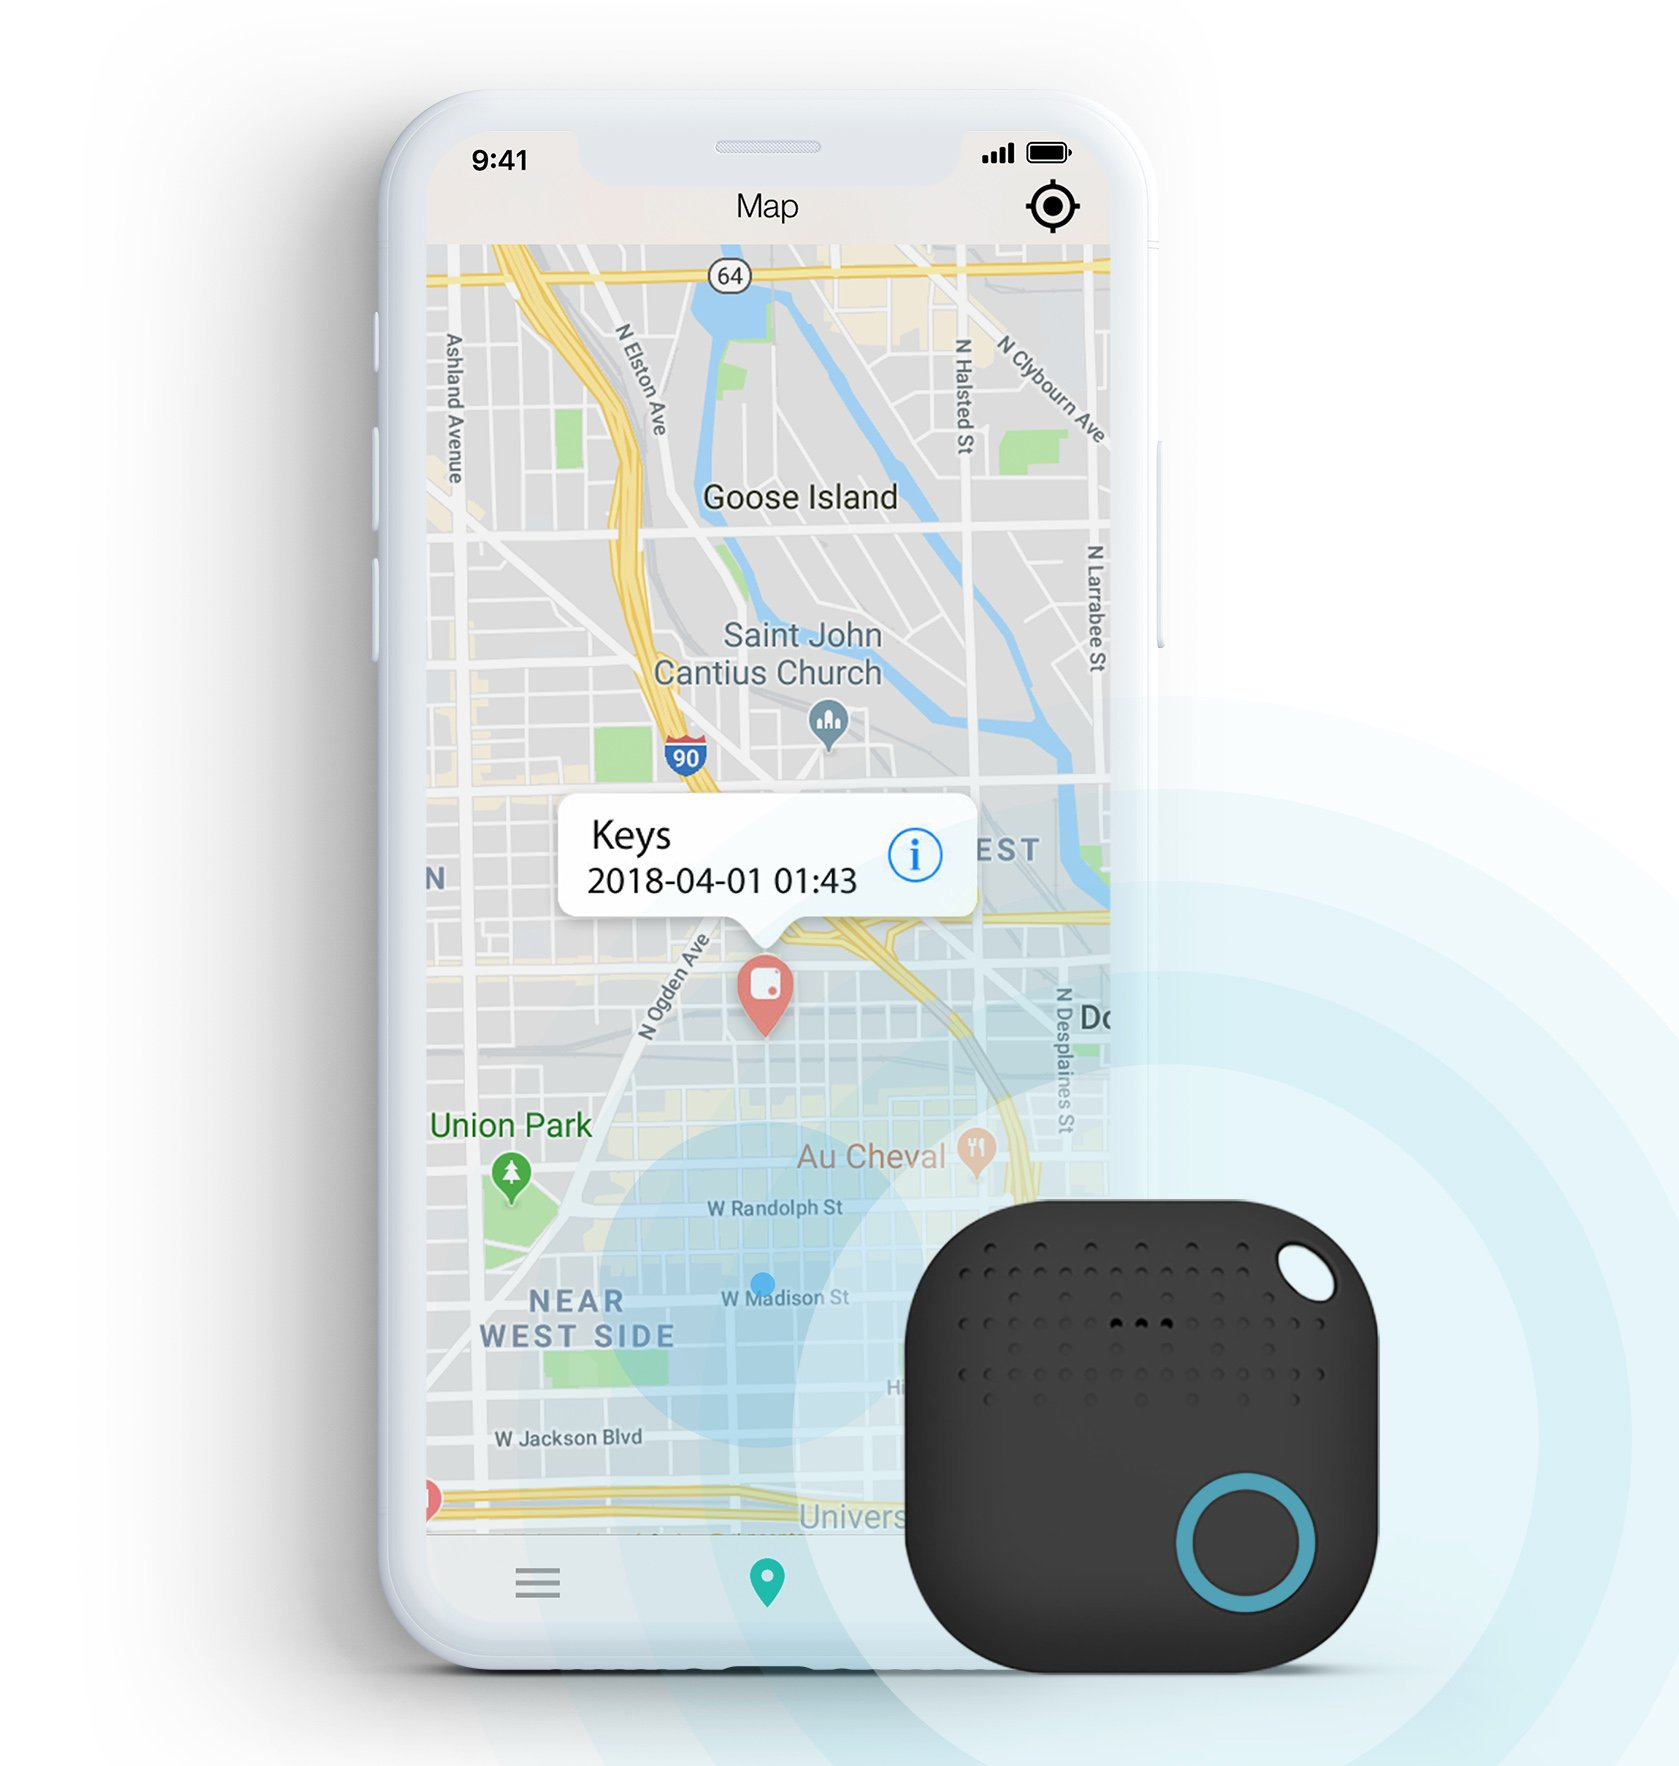 Key Finder Locator - Cell Phone Finder Locator - Wallet Finder - Pet Finder - Smart Tracker - Key Phone Finder - Bluetooth Tracker for Lost Items - Anti-Lost Alarm - iOS & Android App for Lost Items by Nuva Goods